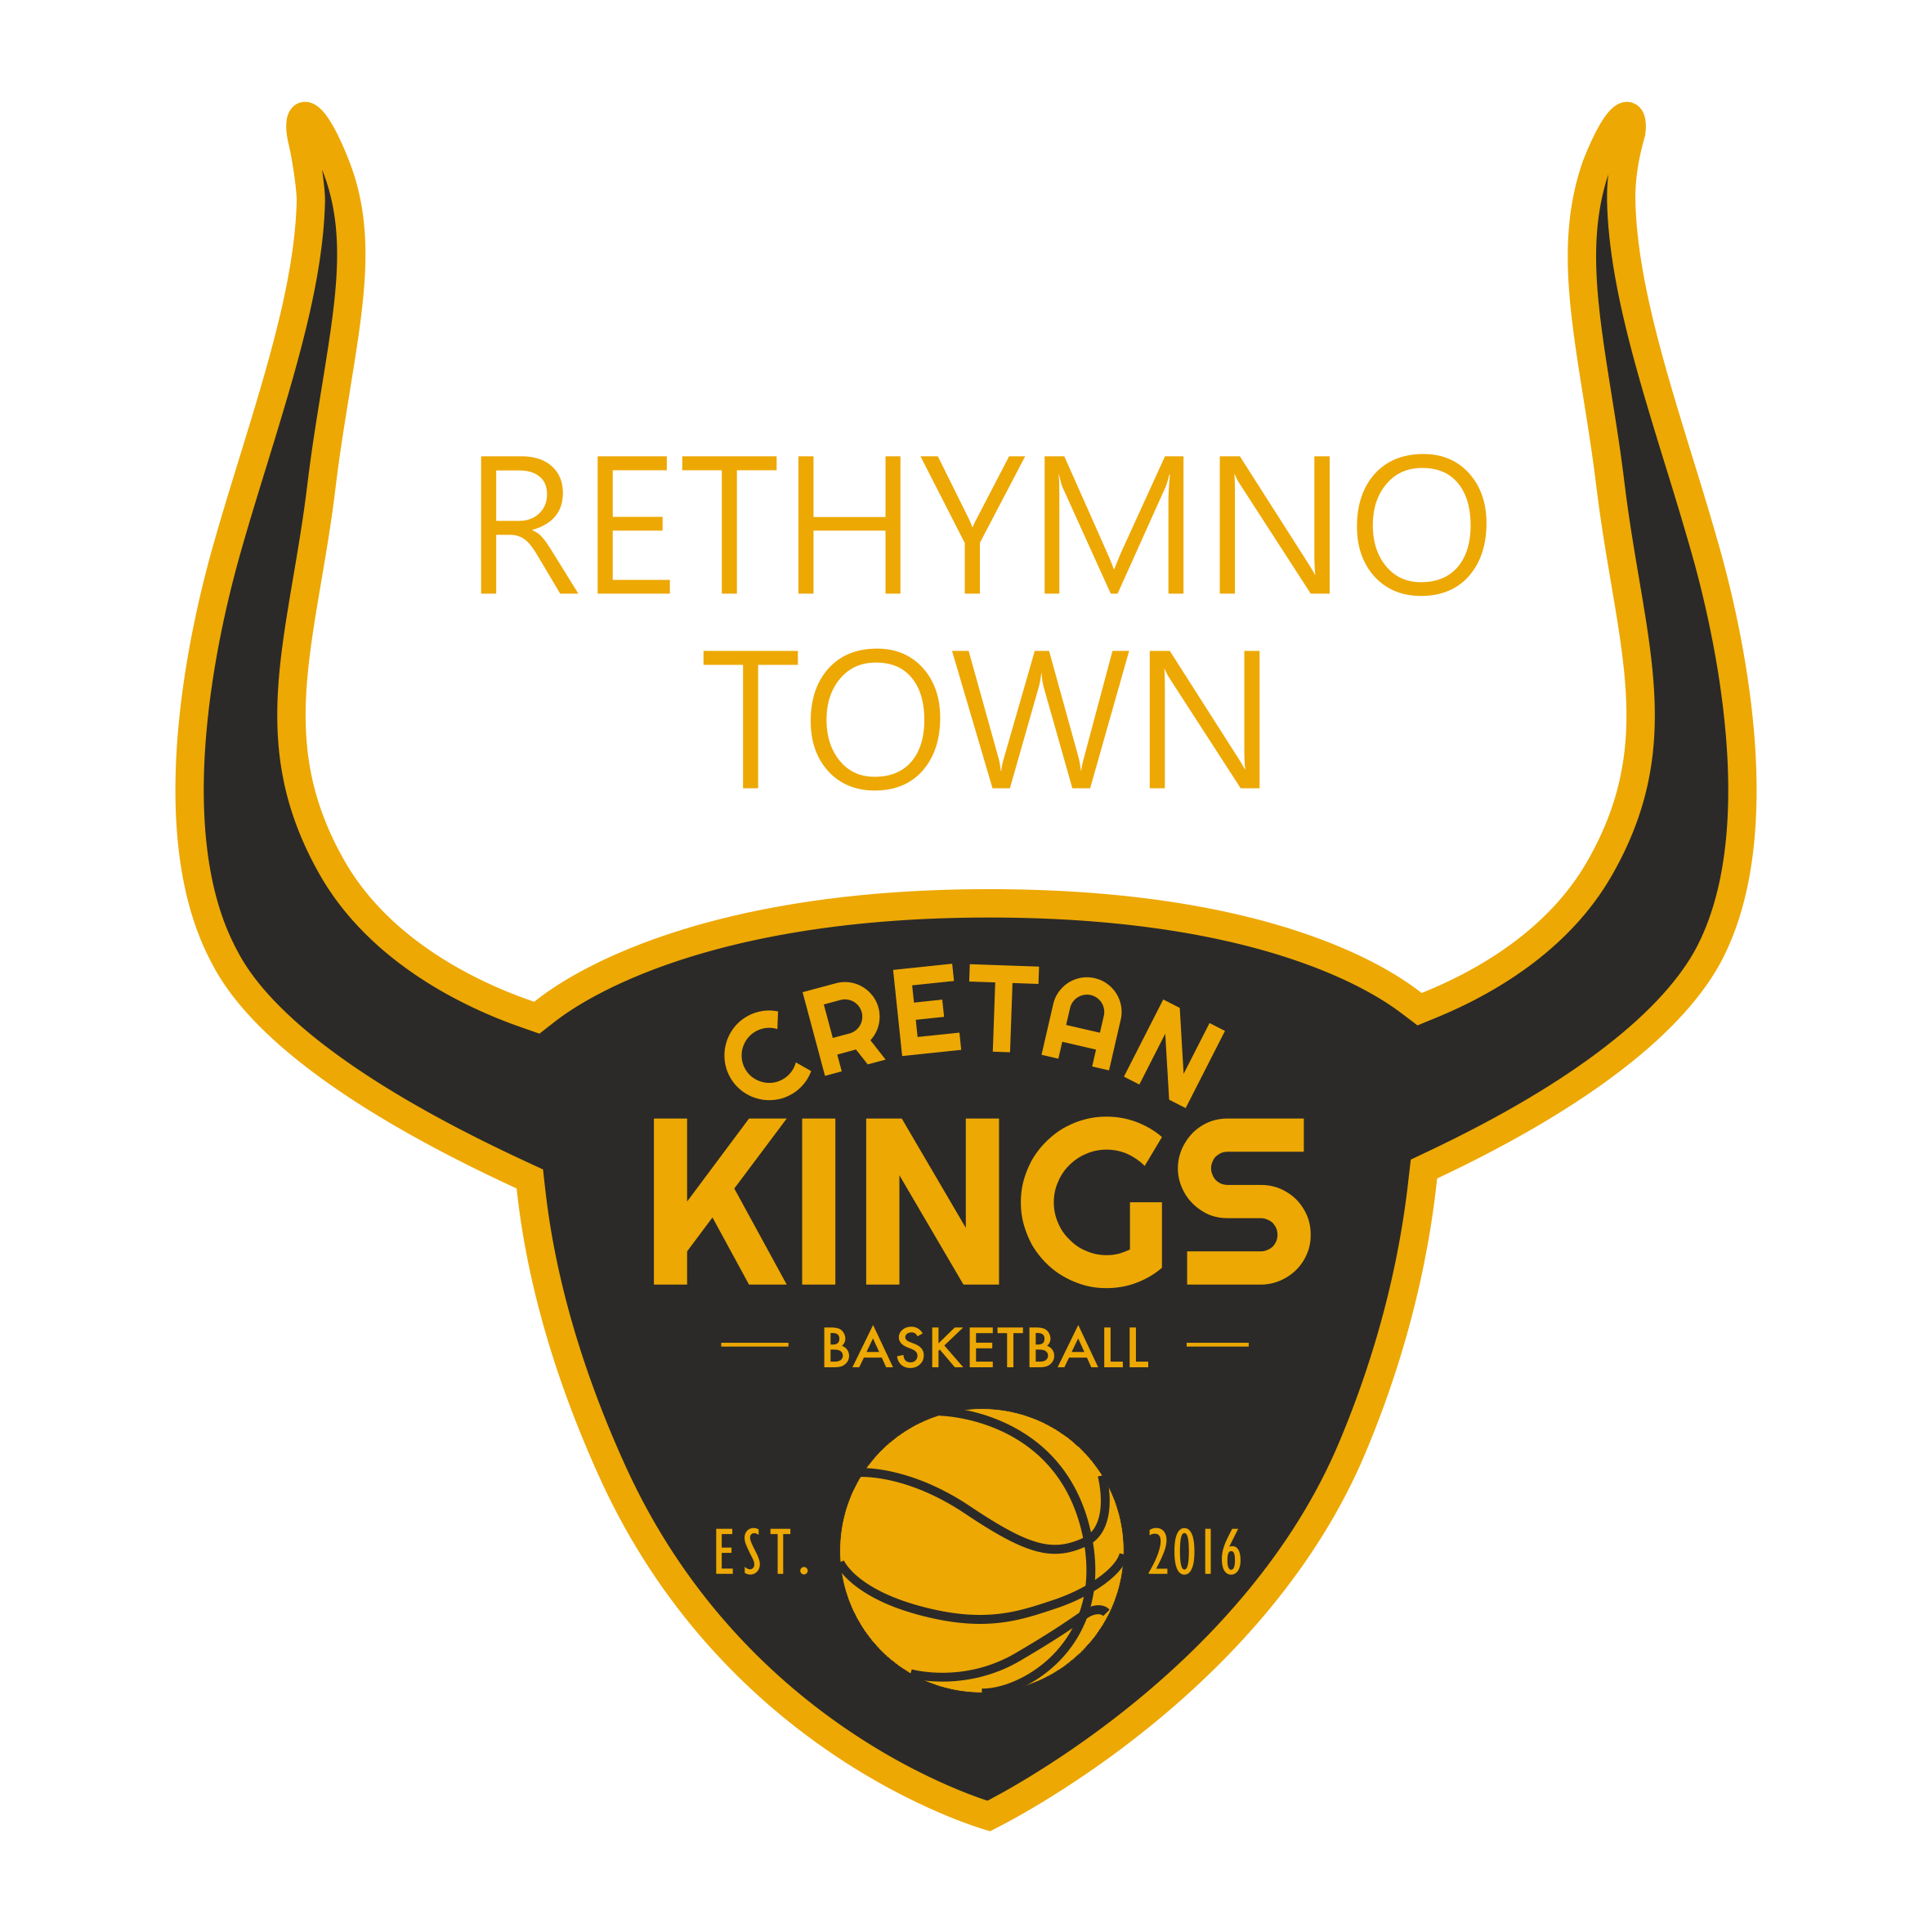 cretan kings logo yellow1